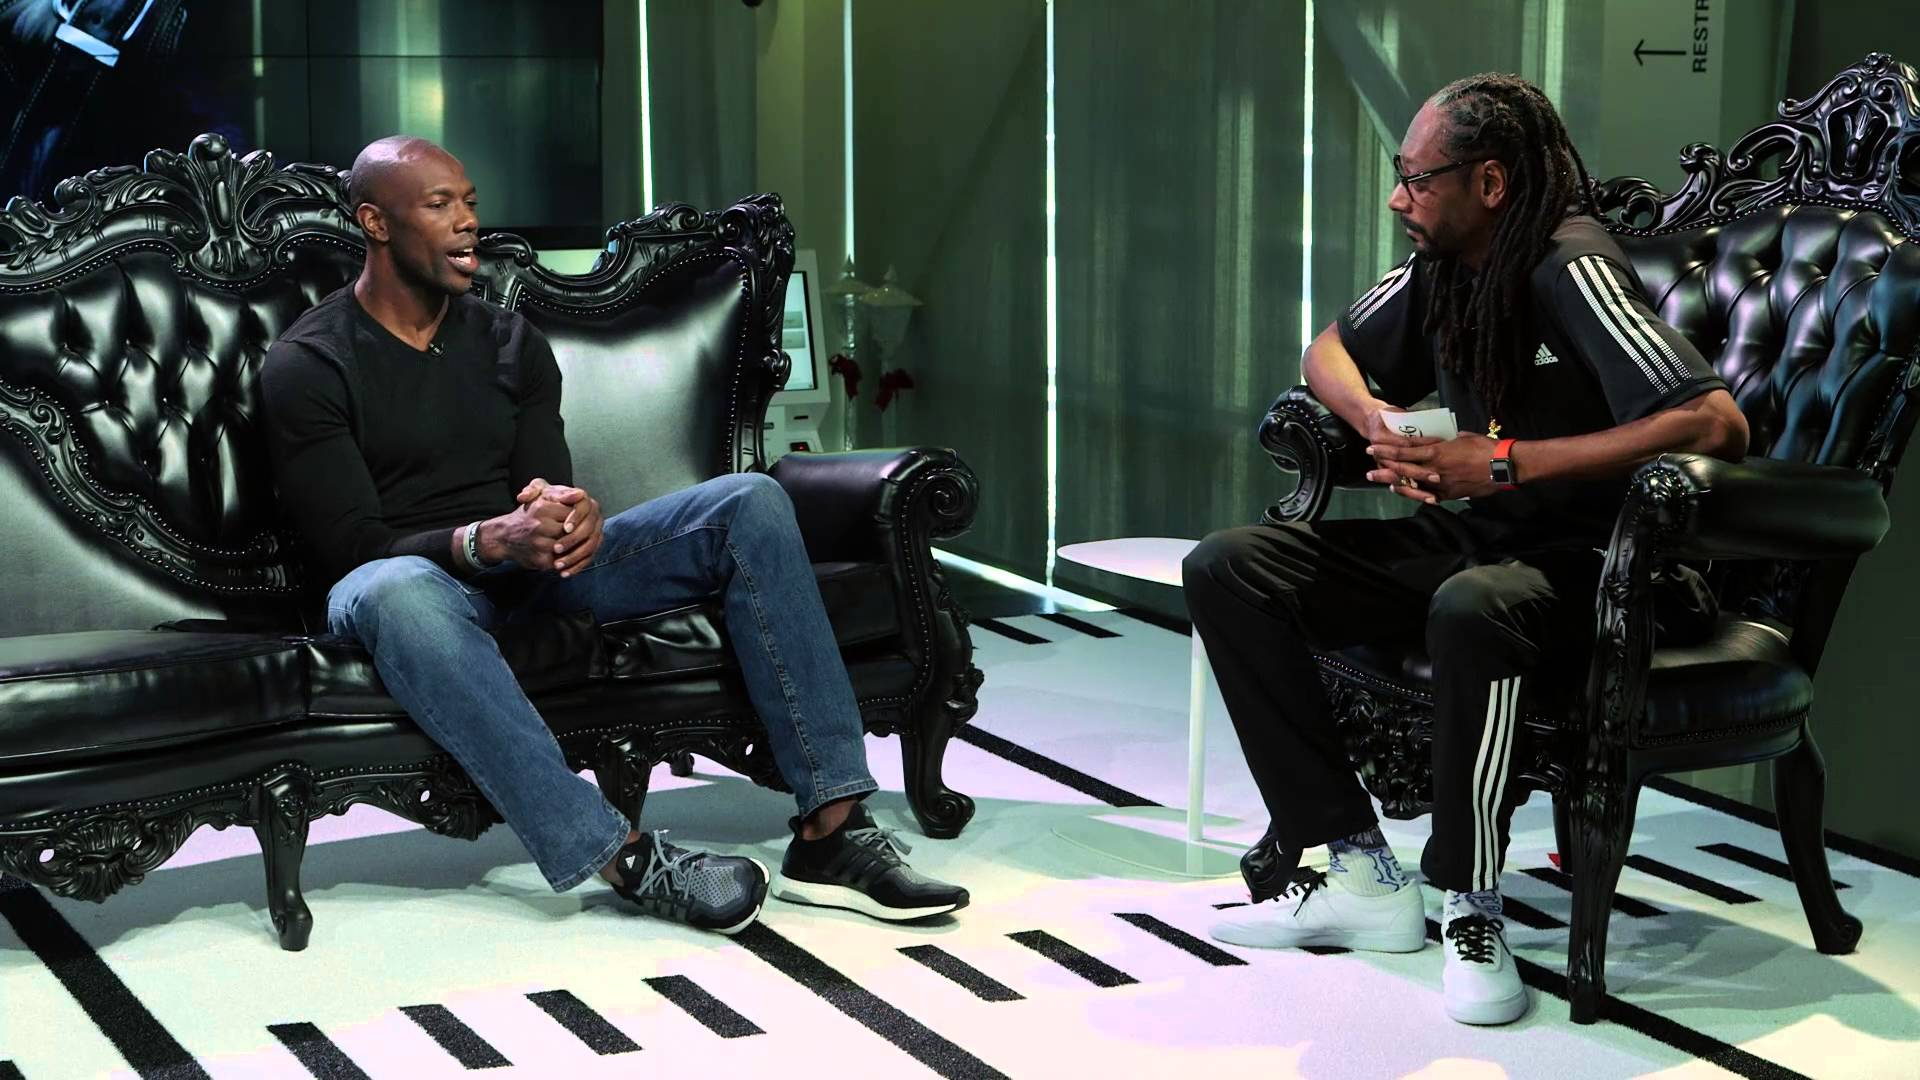 Snoop Dogg interviews Terrell Owens for show